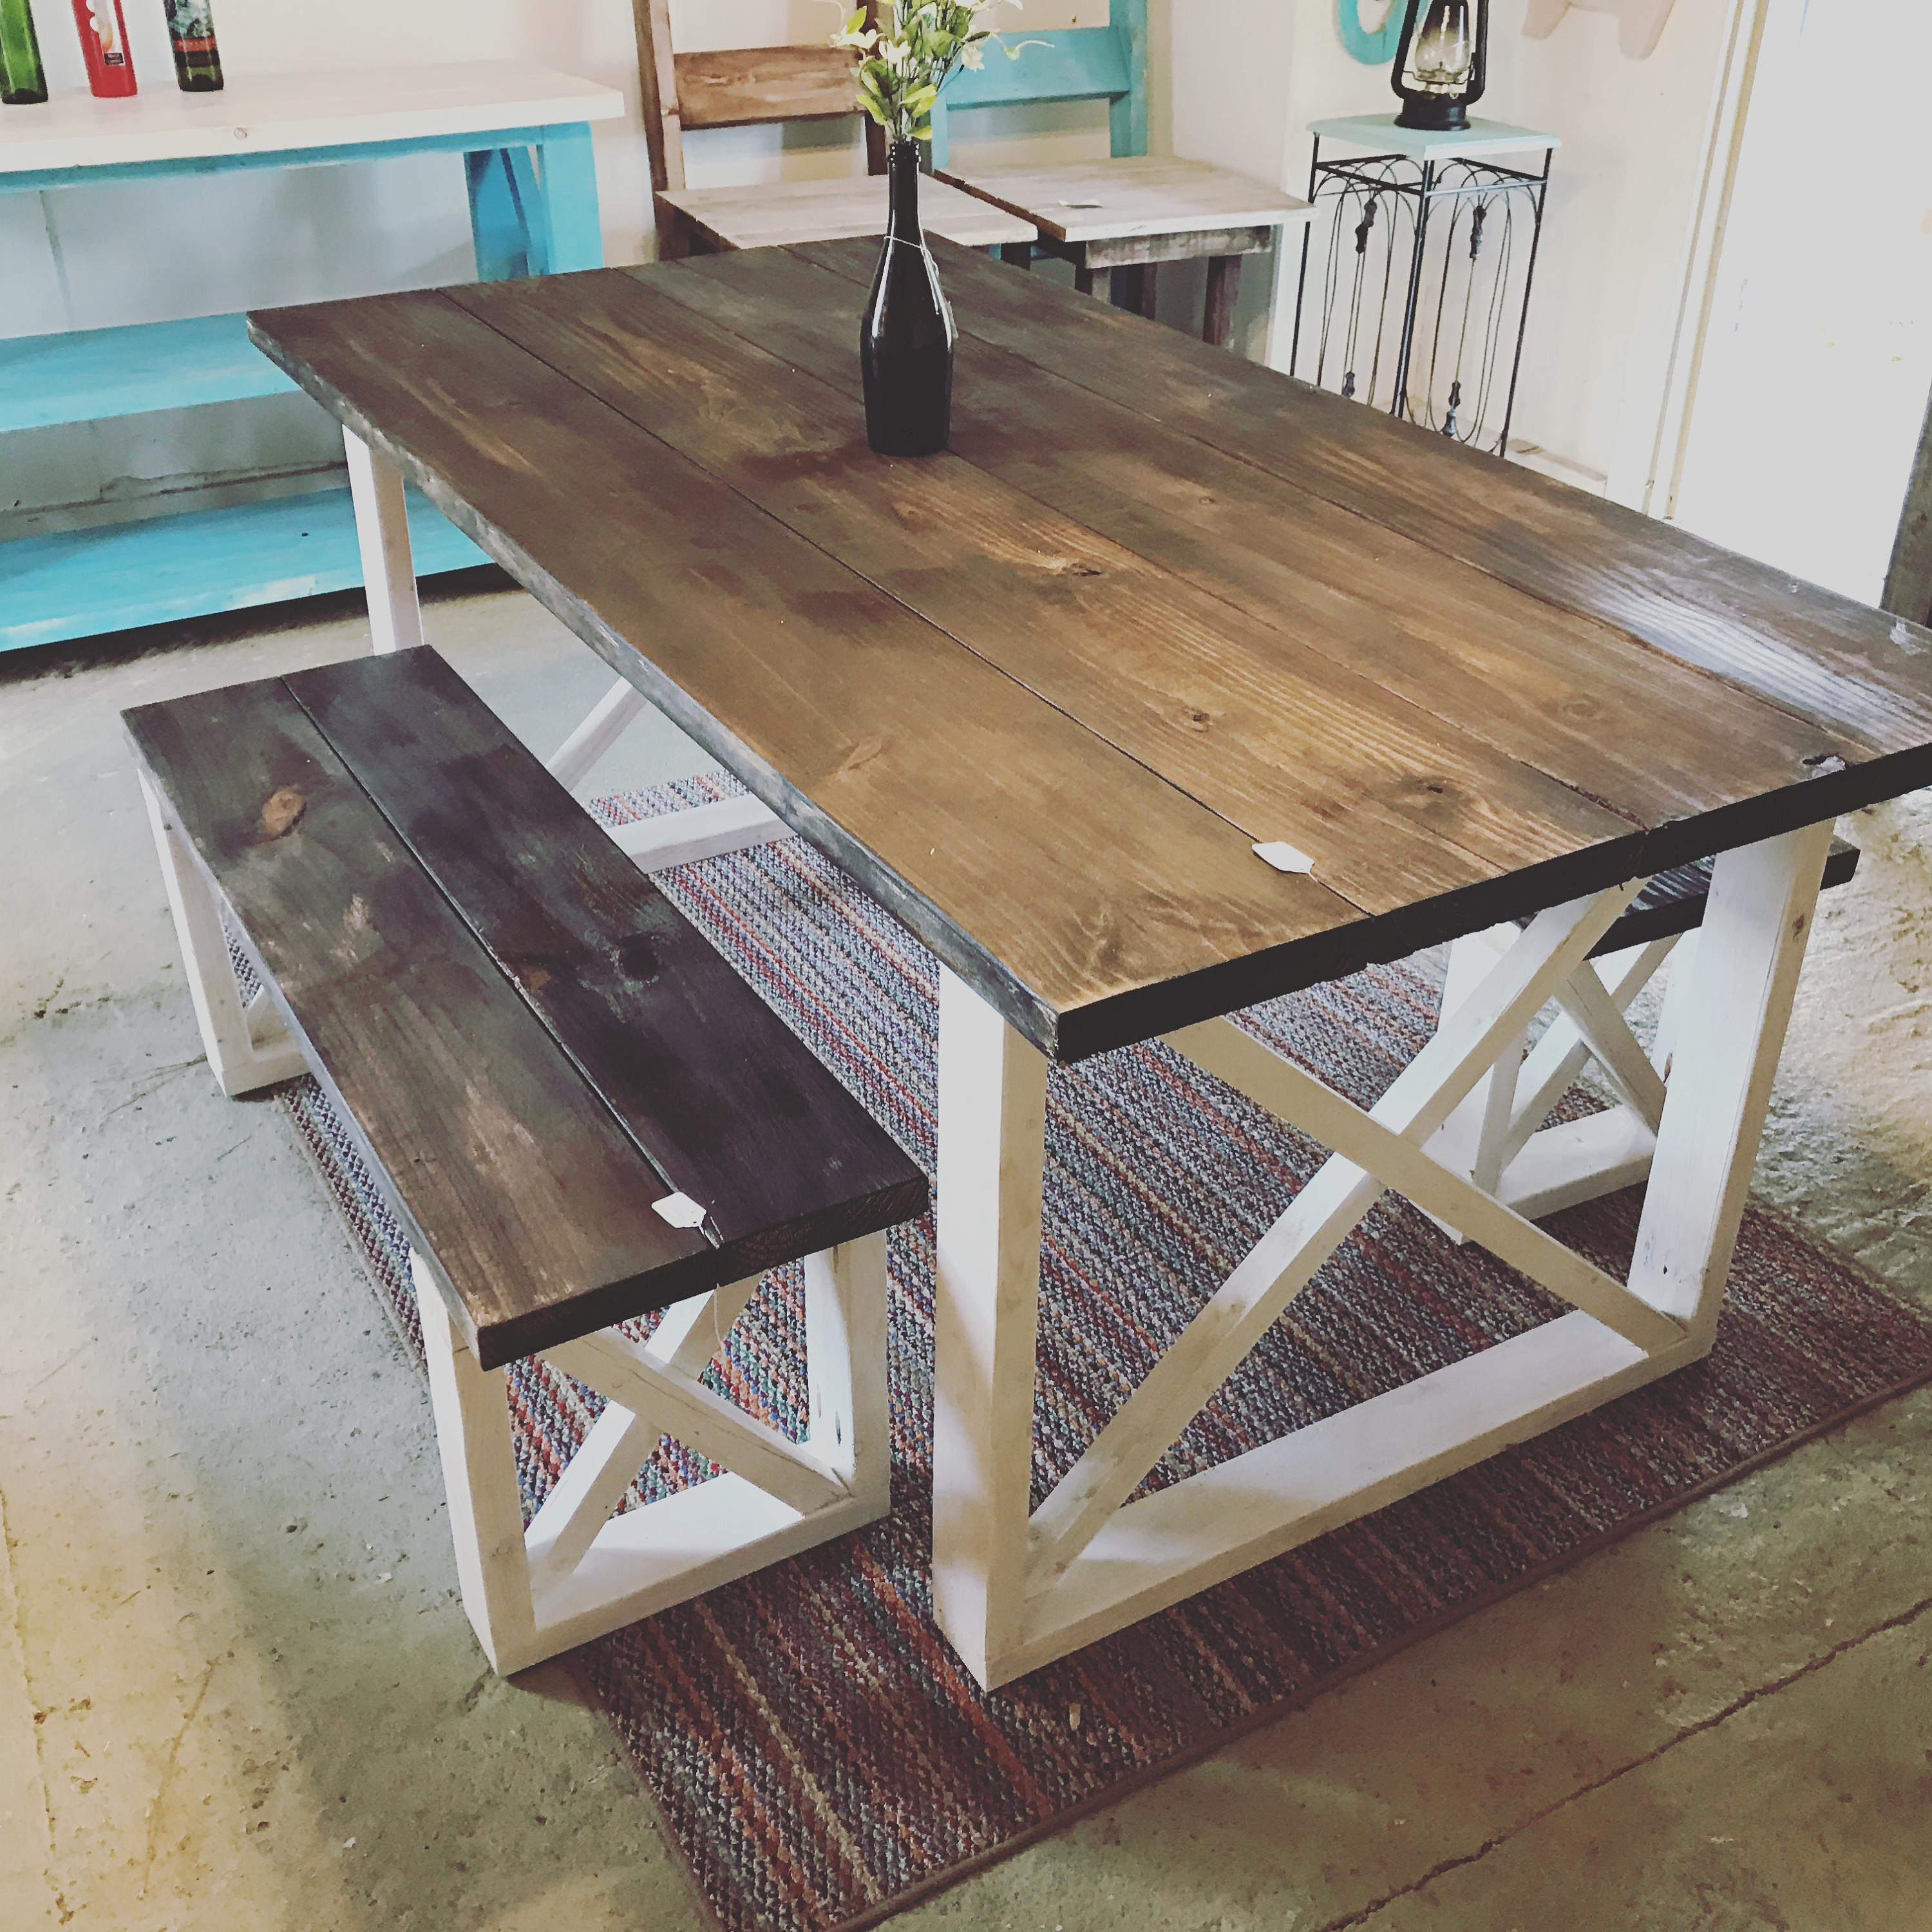 Kitchen Table With Bench Rustic Kitchen Tables And Table: Rustic Farmhouse Table With Benches With Dark Walnut Top